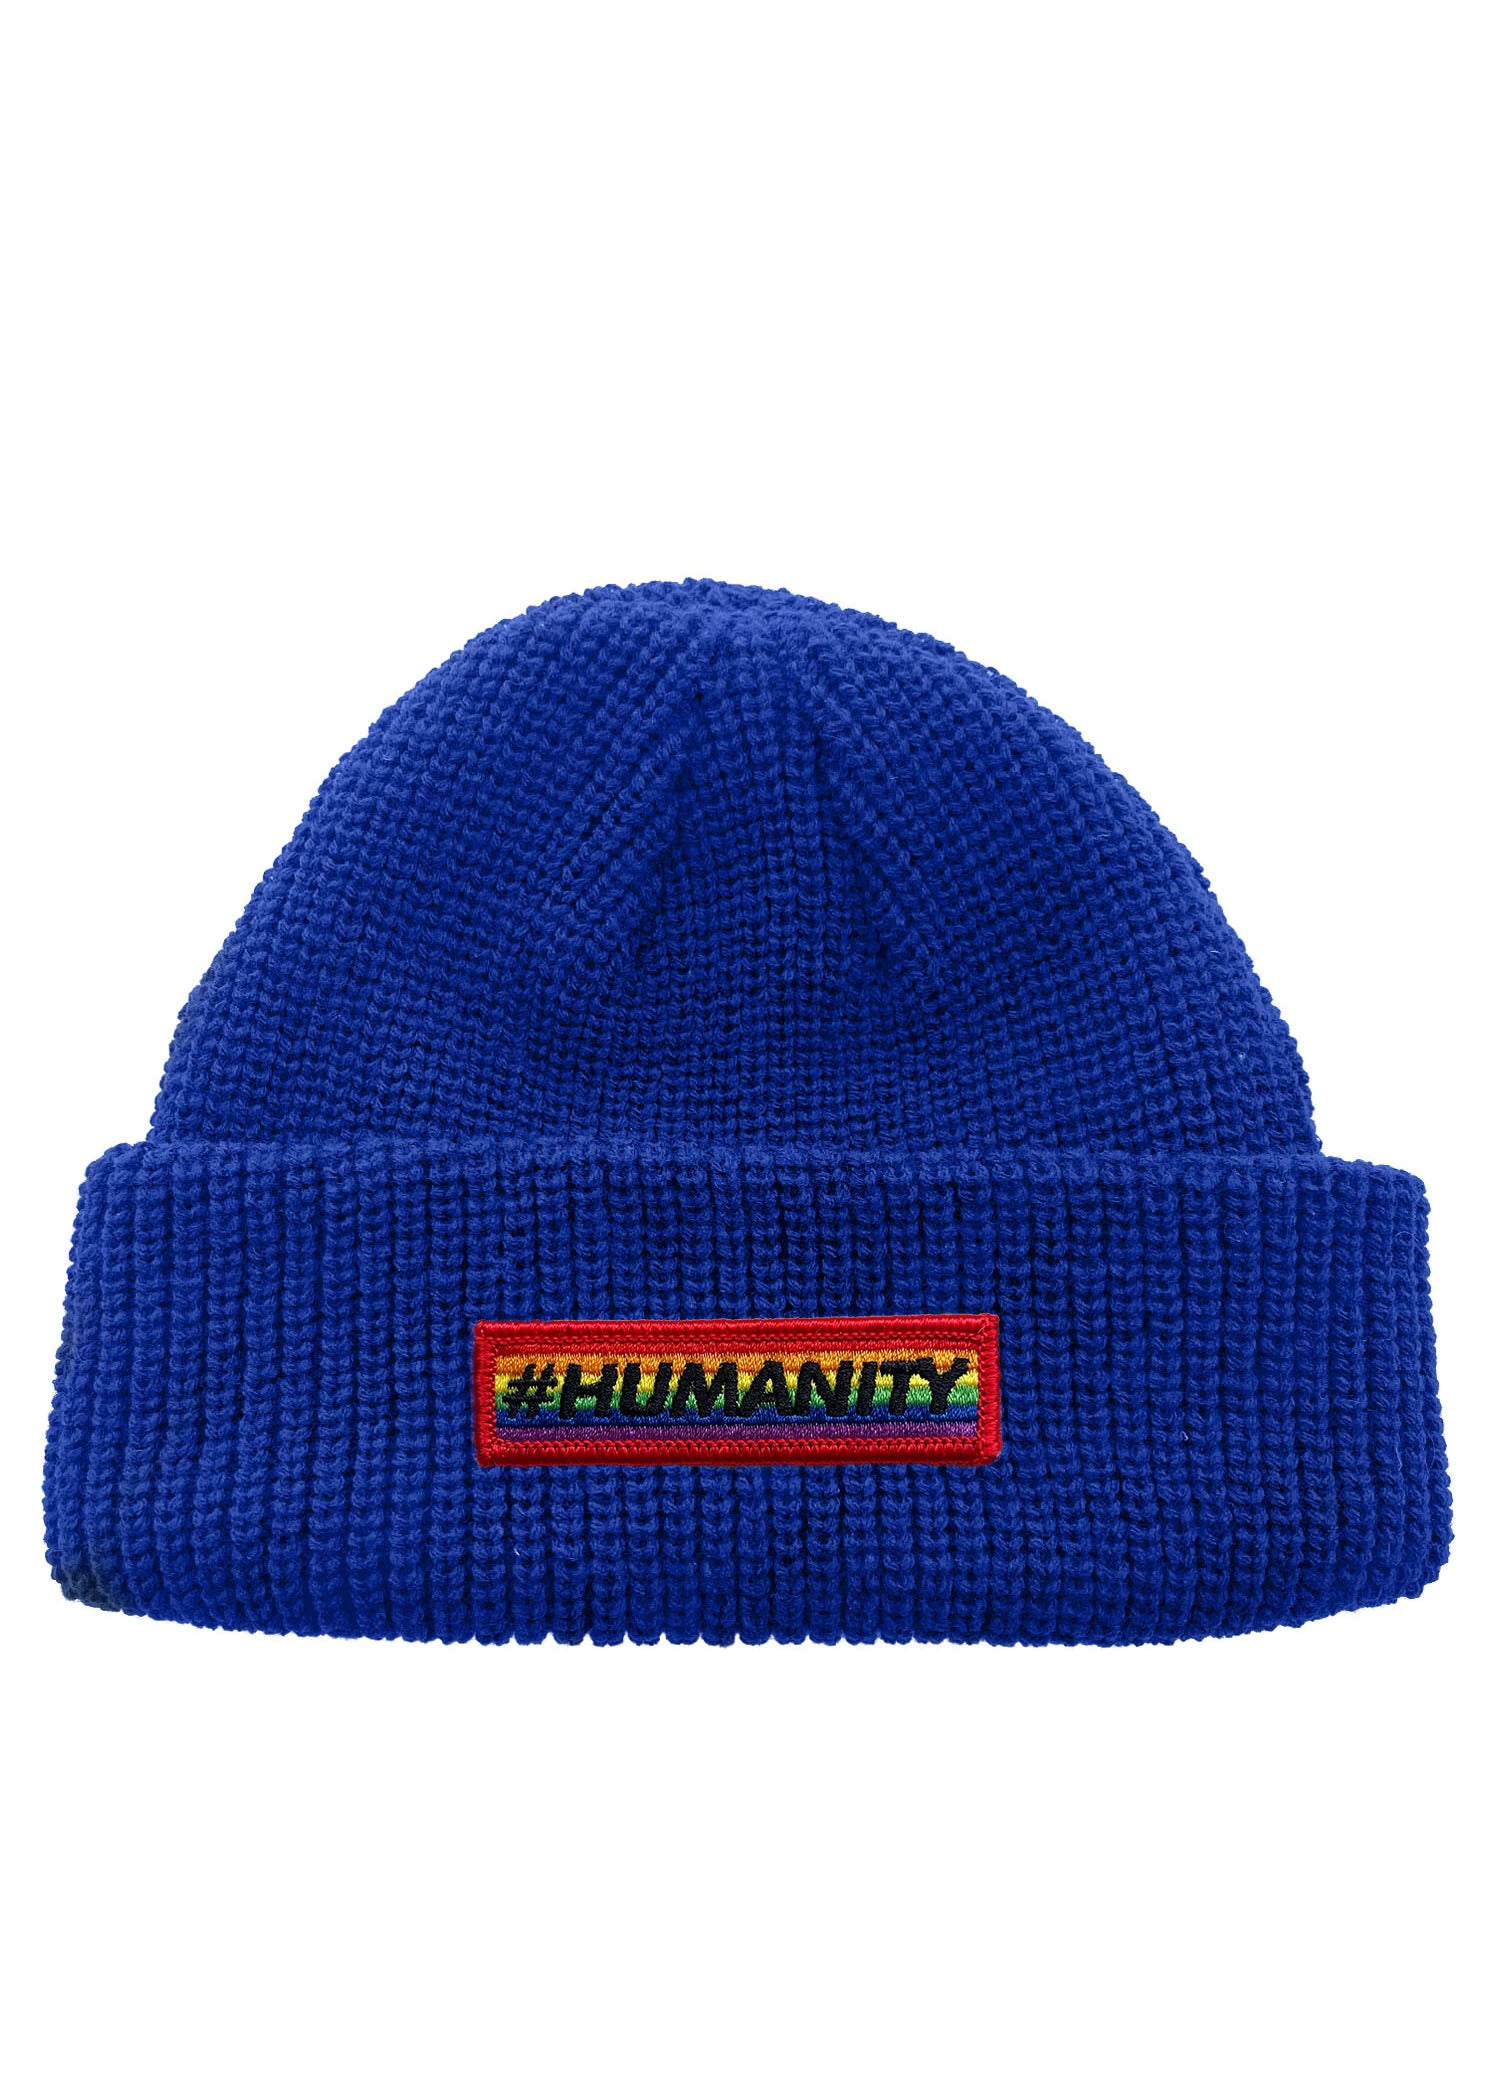 Humantiy Pride Bar Patch Neon Color Rollup Fisherman Knit Beanie